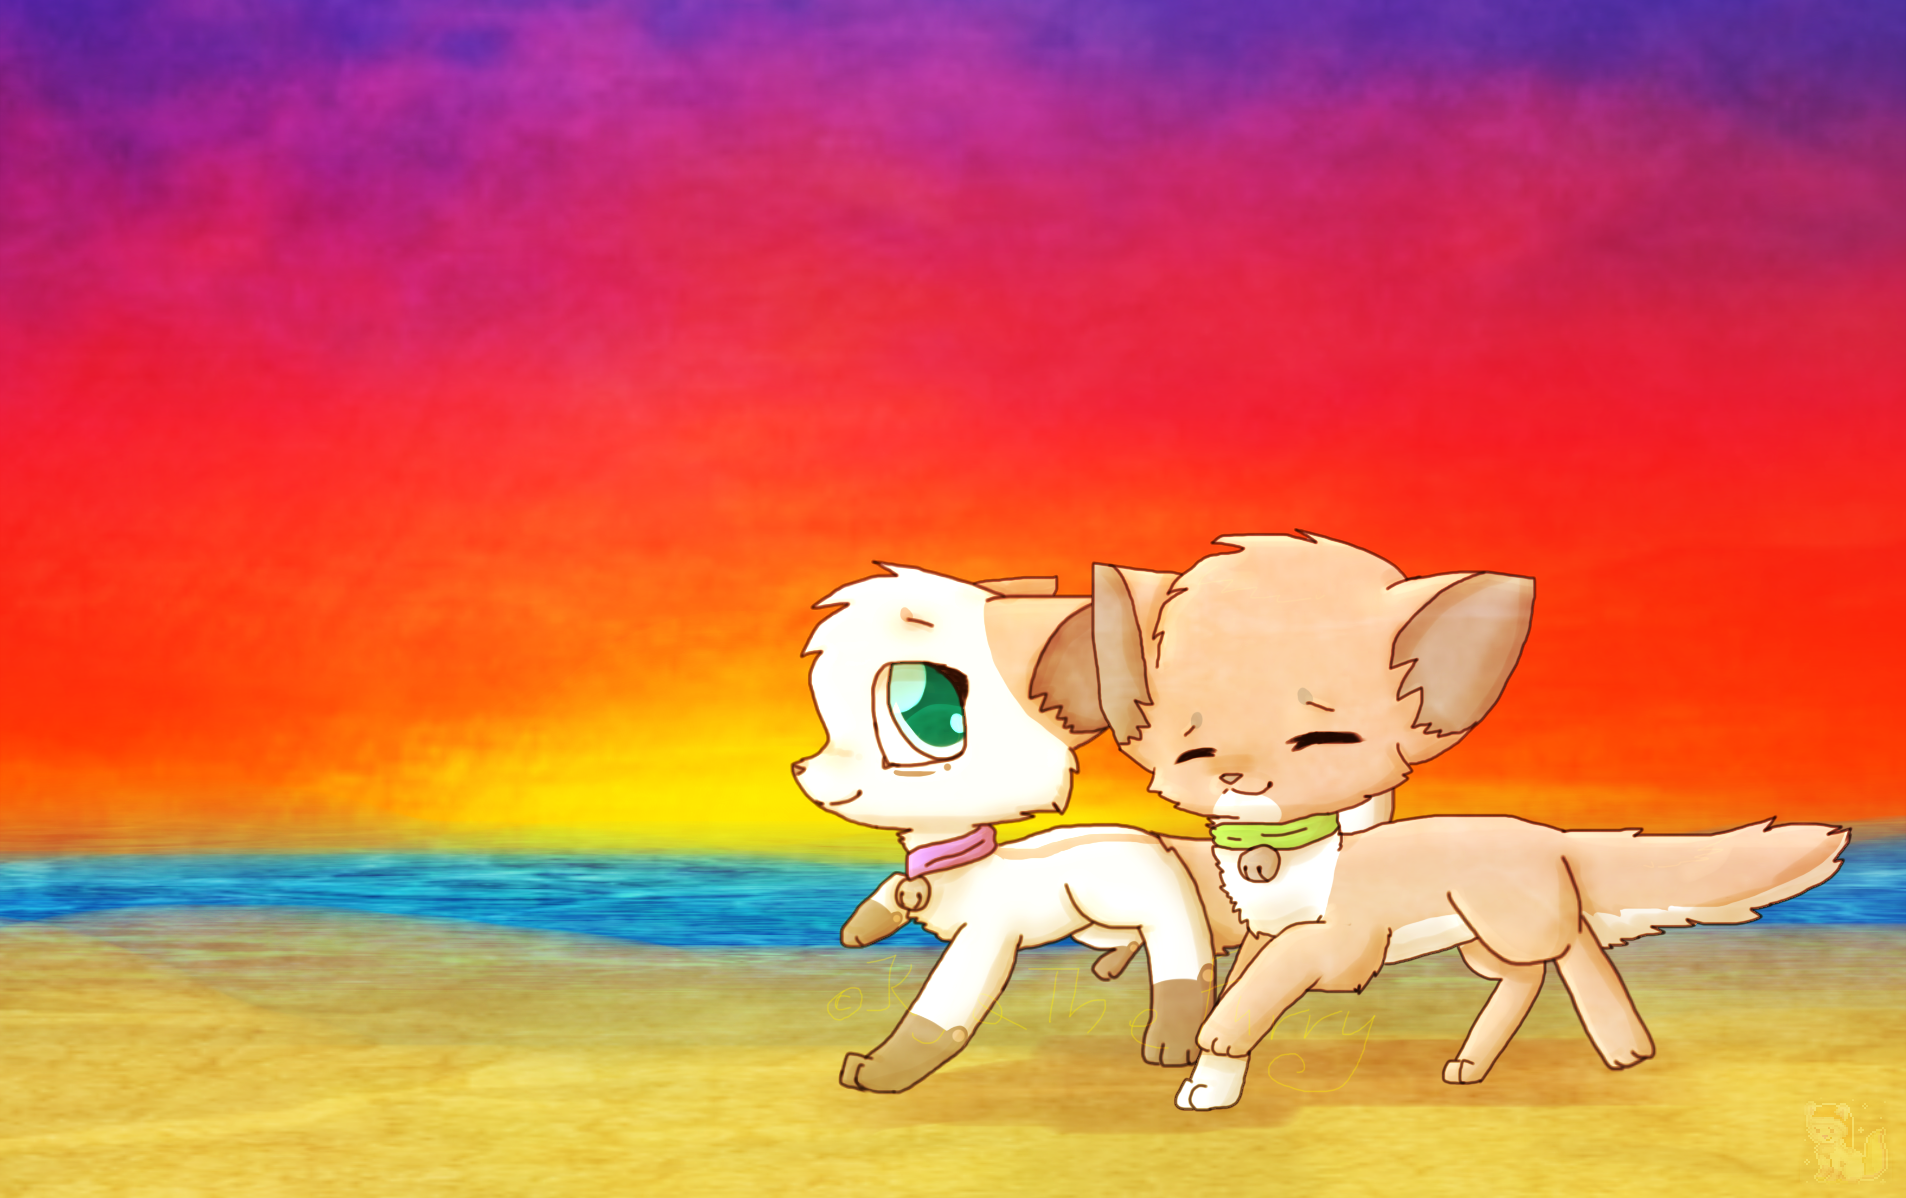 .:CE:. running with sister at sunset~ by KajaTheFurry